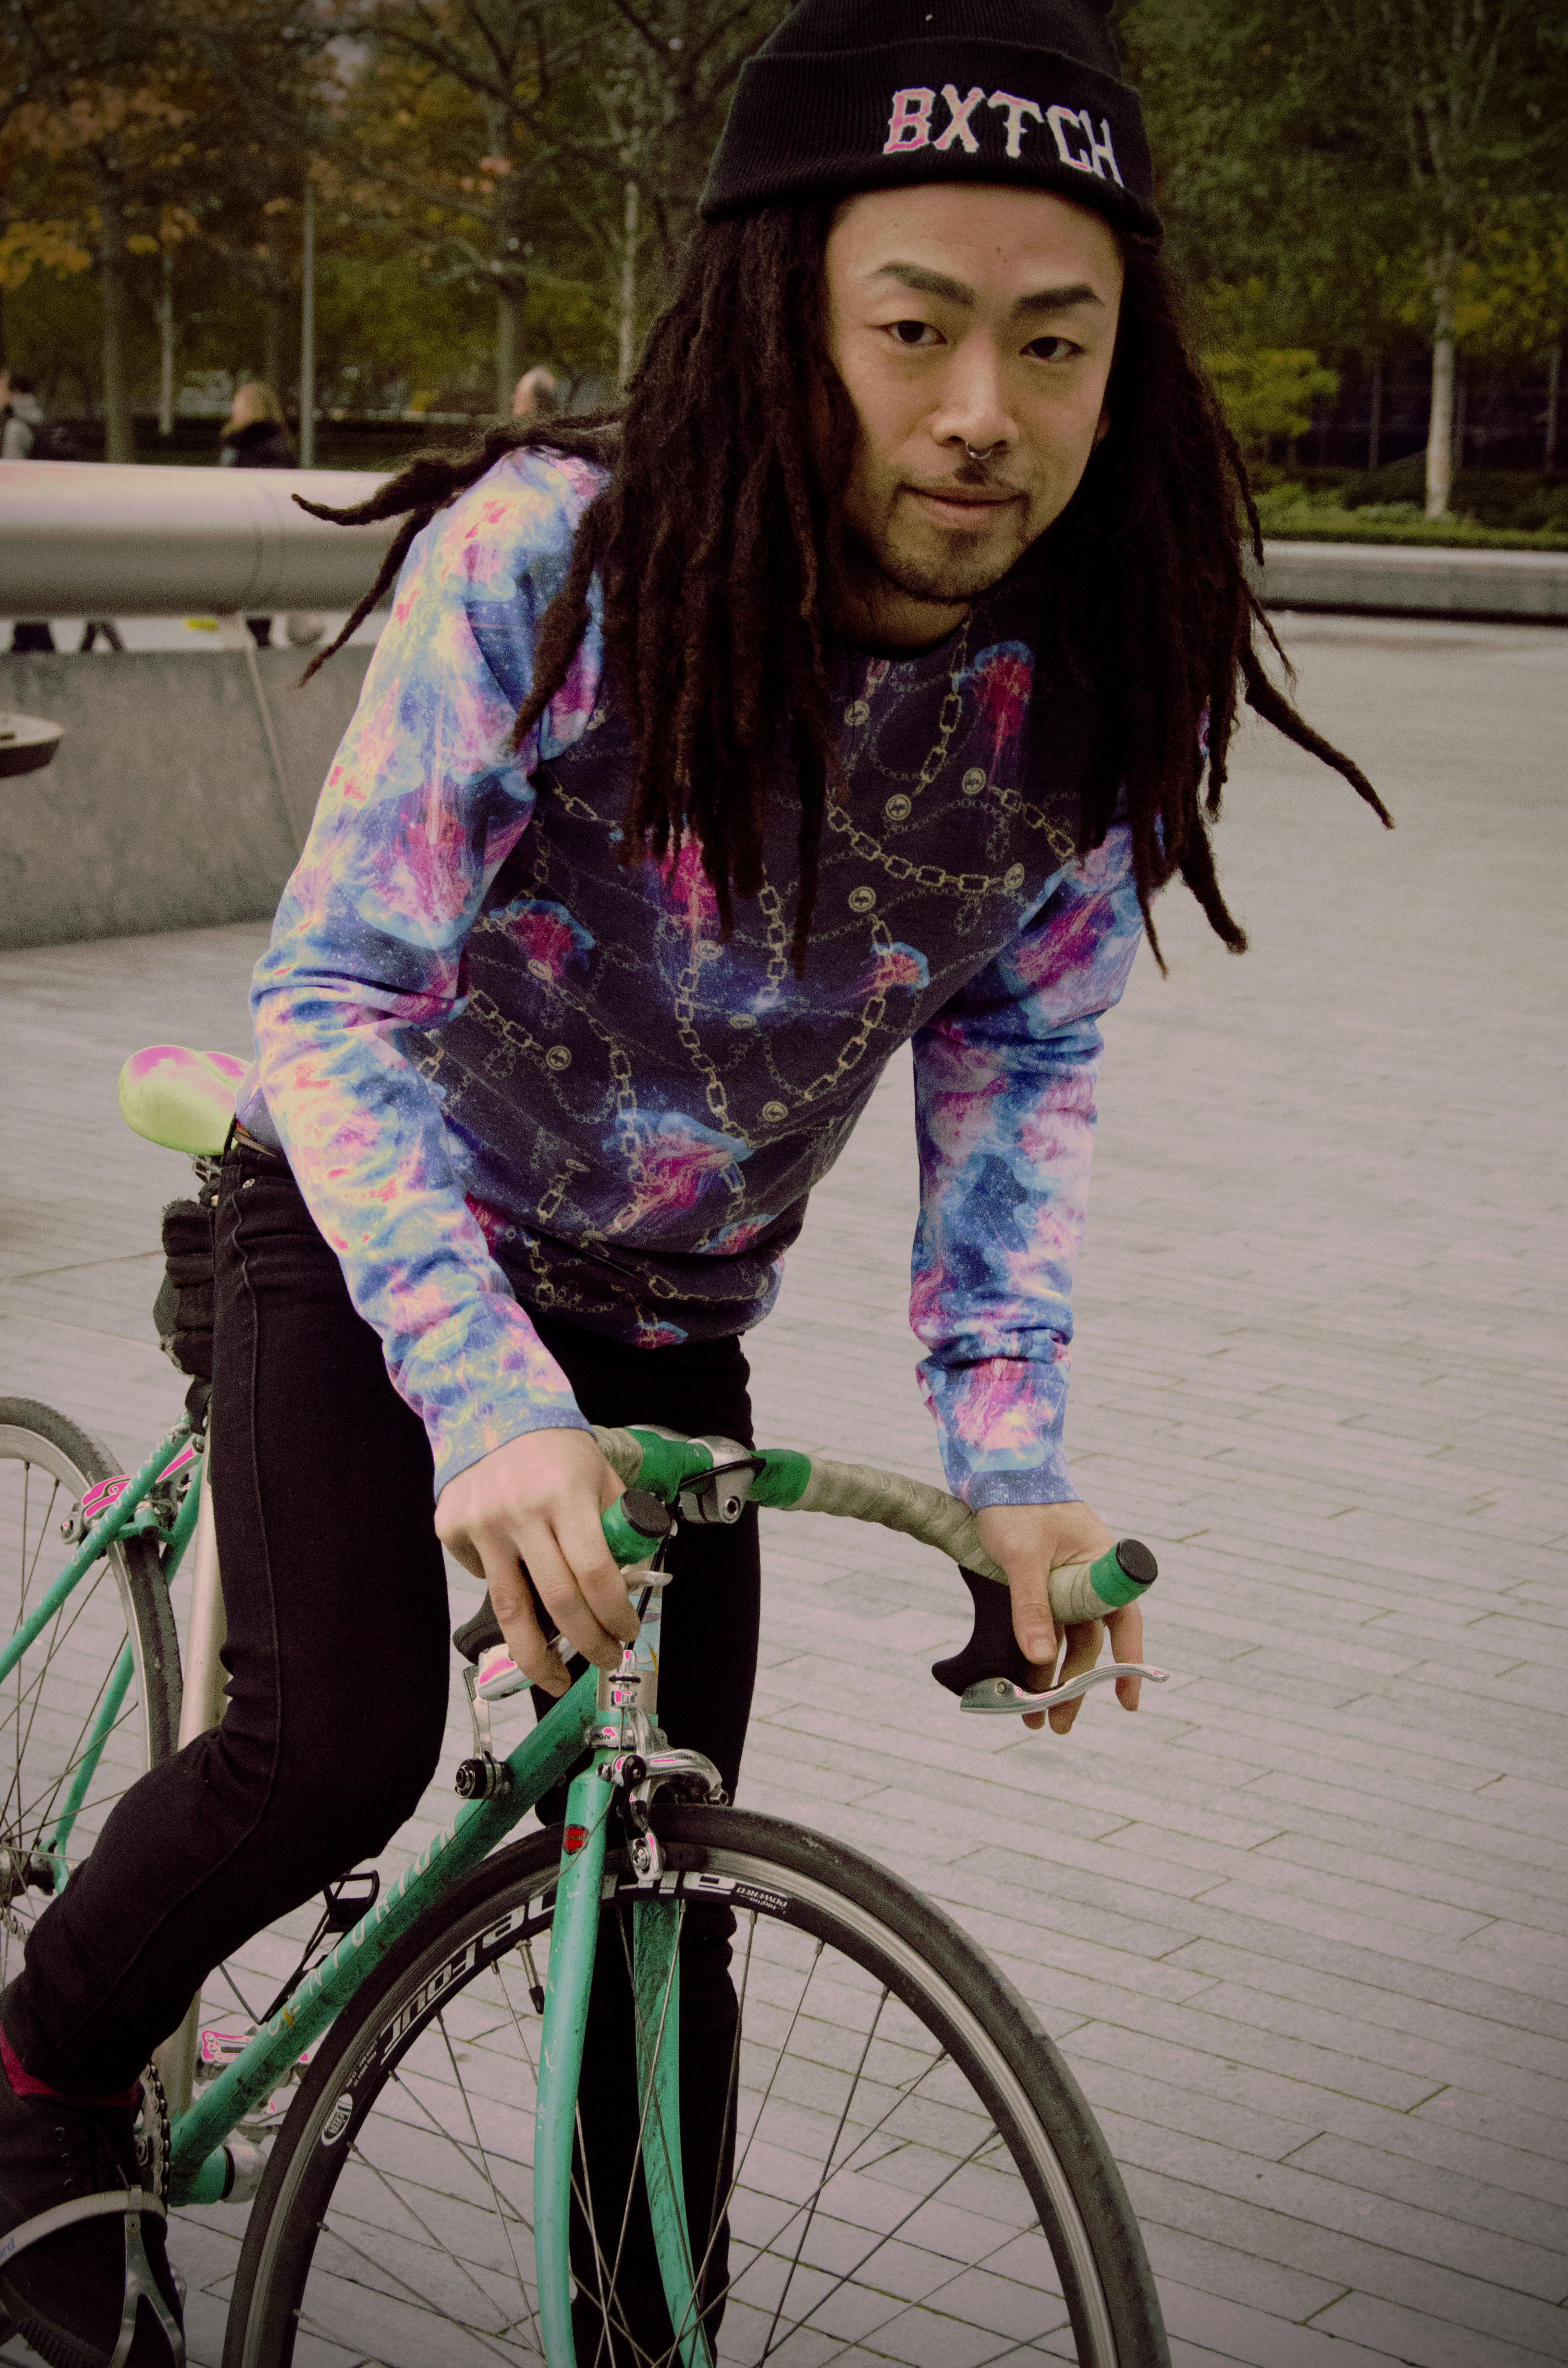 Marcy on a fixed gear green bike